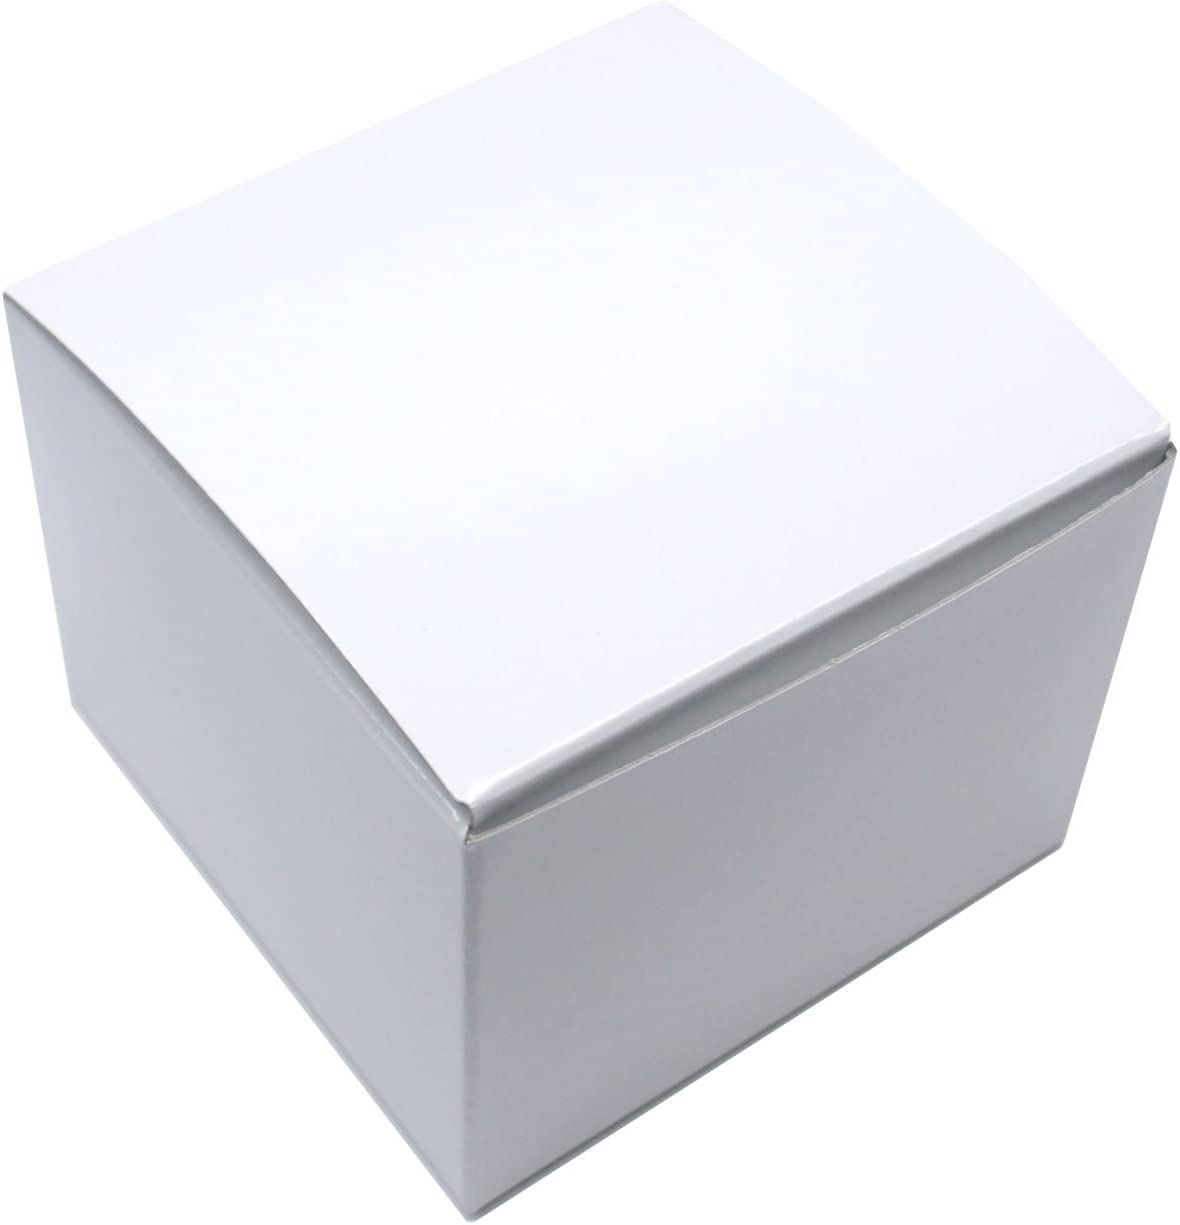 Comes in Round Tin with Lid and Gift Box Butler in the Home 100 Count Cloud Shaped Paper Clips Great for Paper Clip Collectors or Office Gift White